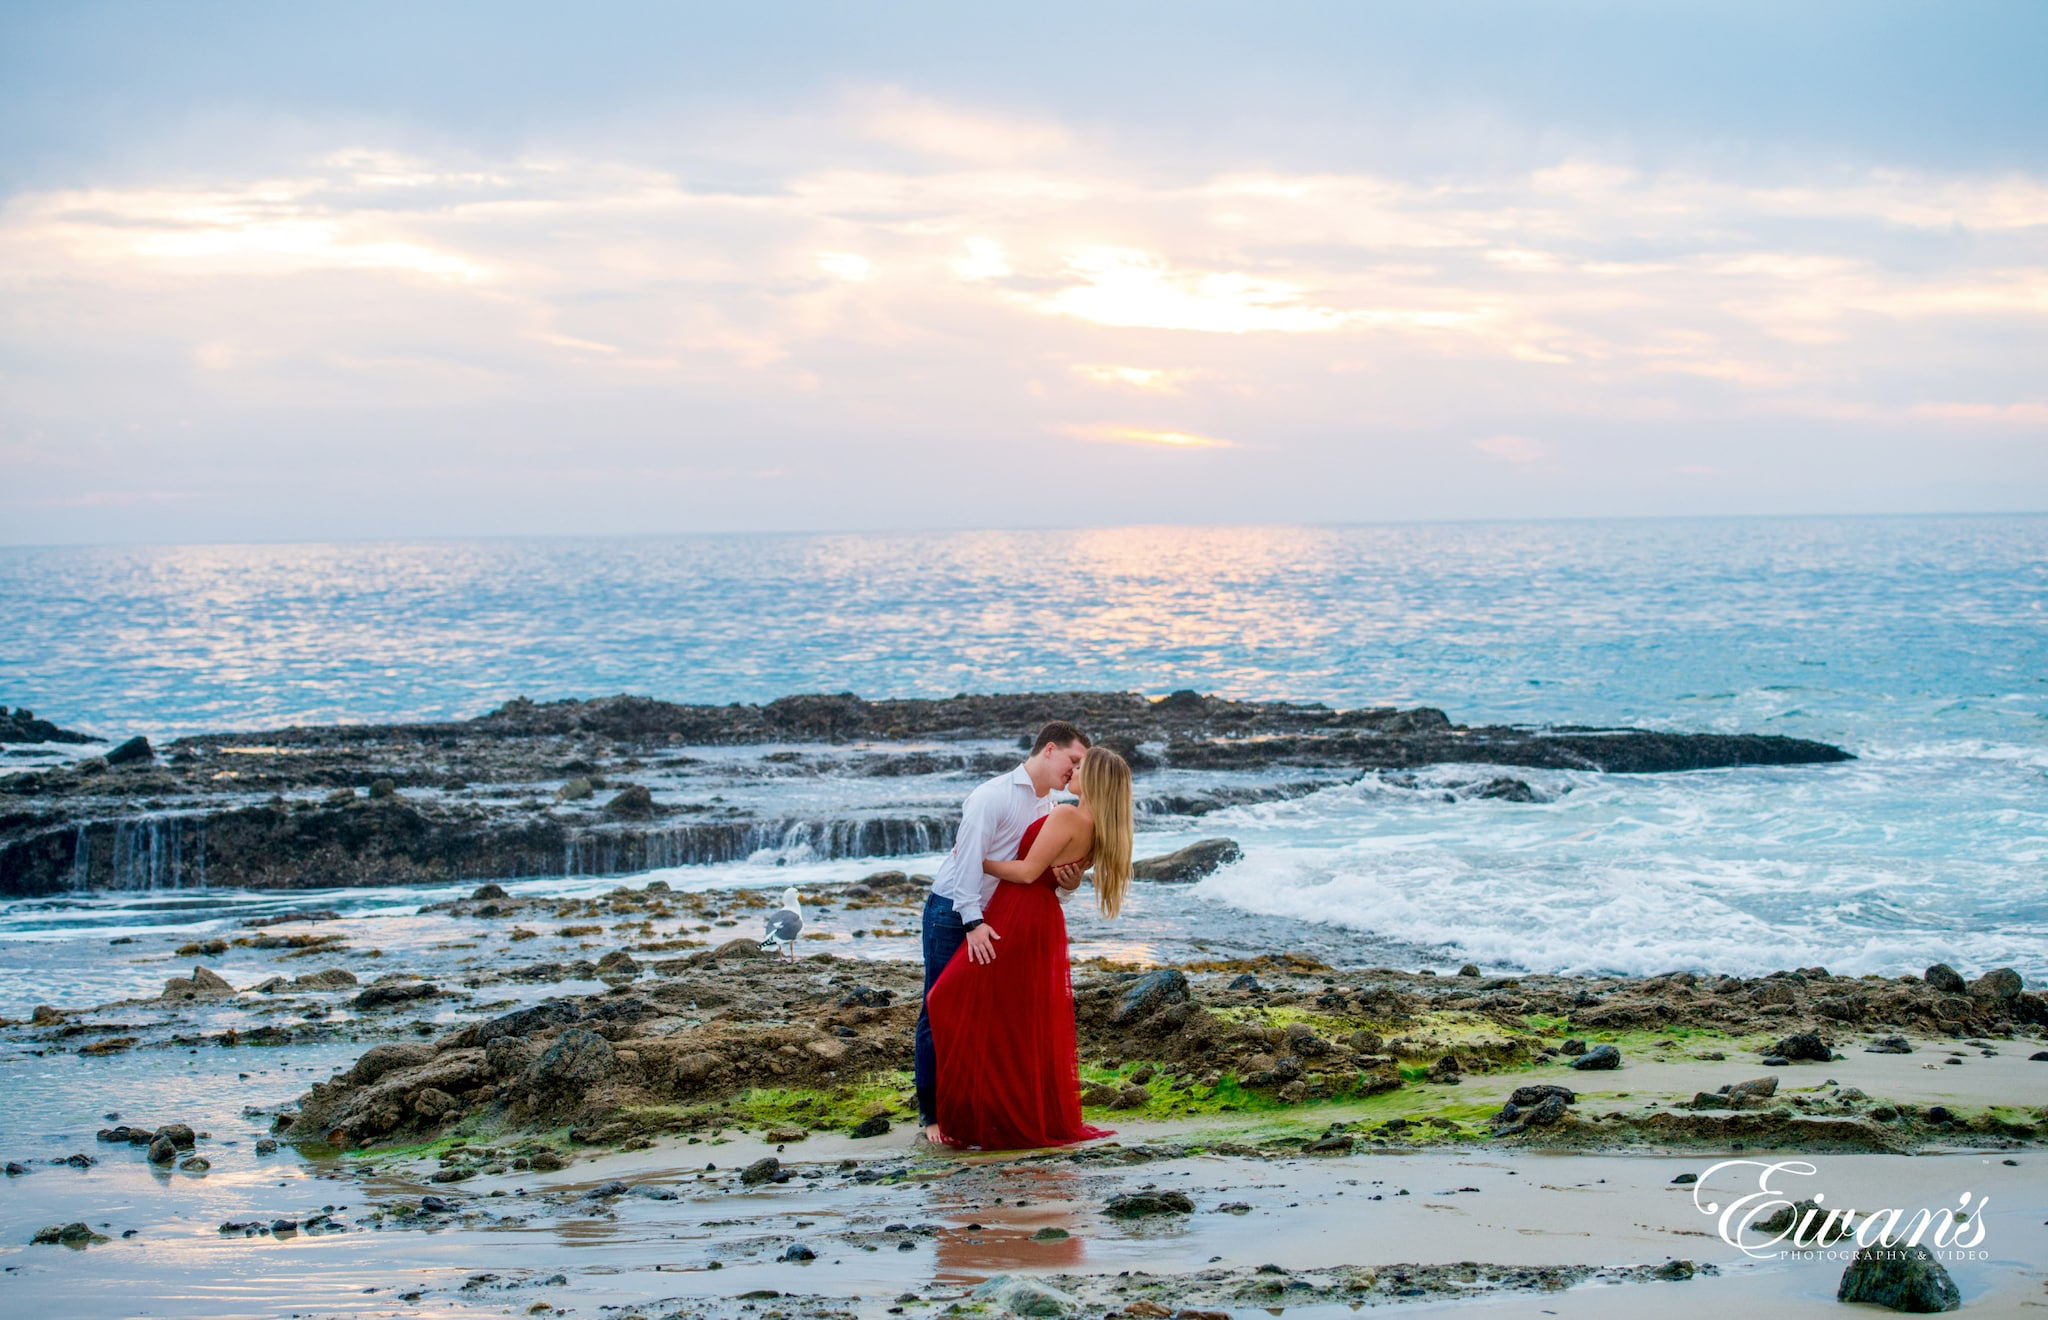 woman in red dress standing on seashore during daytime